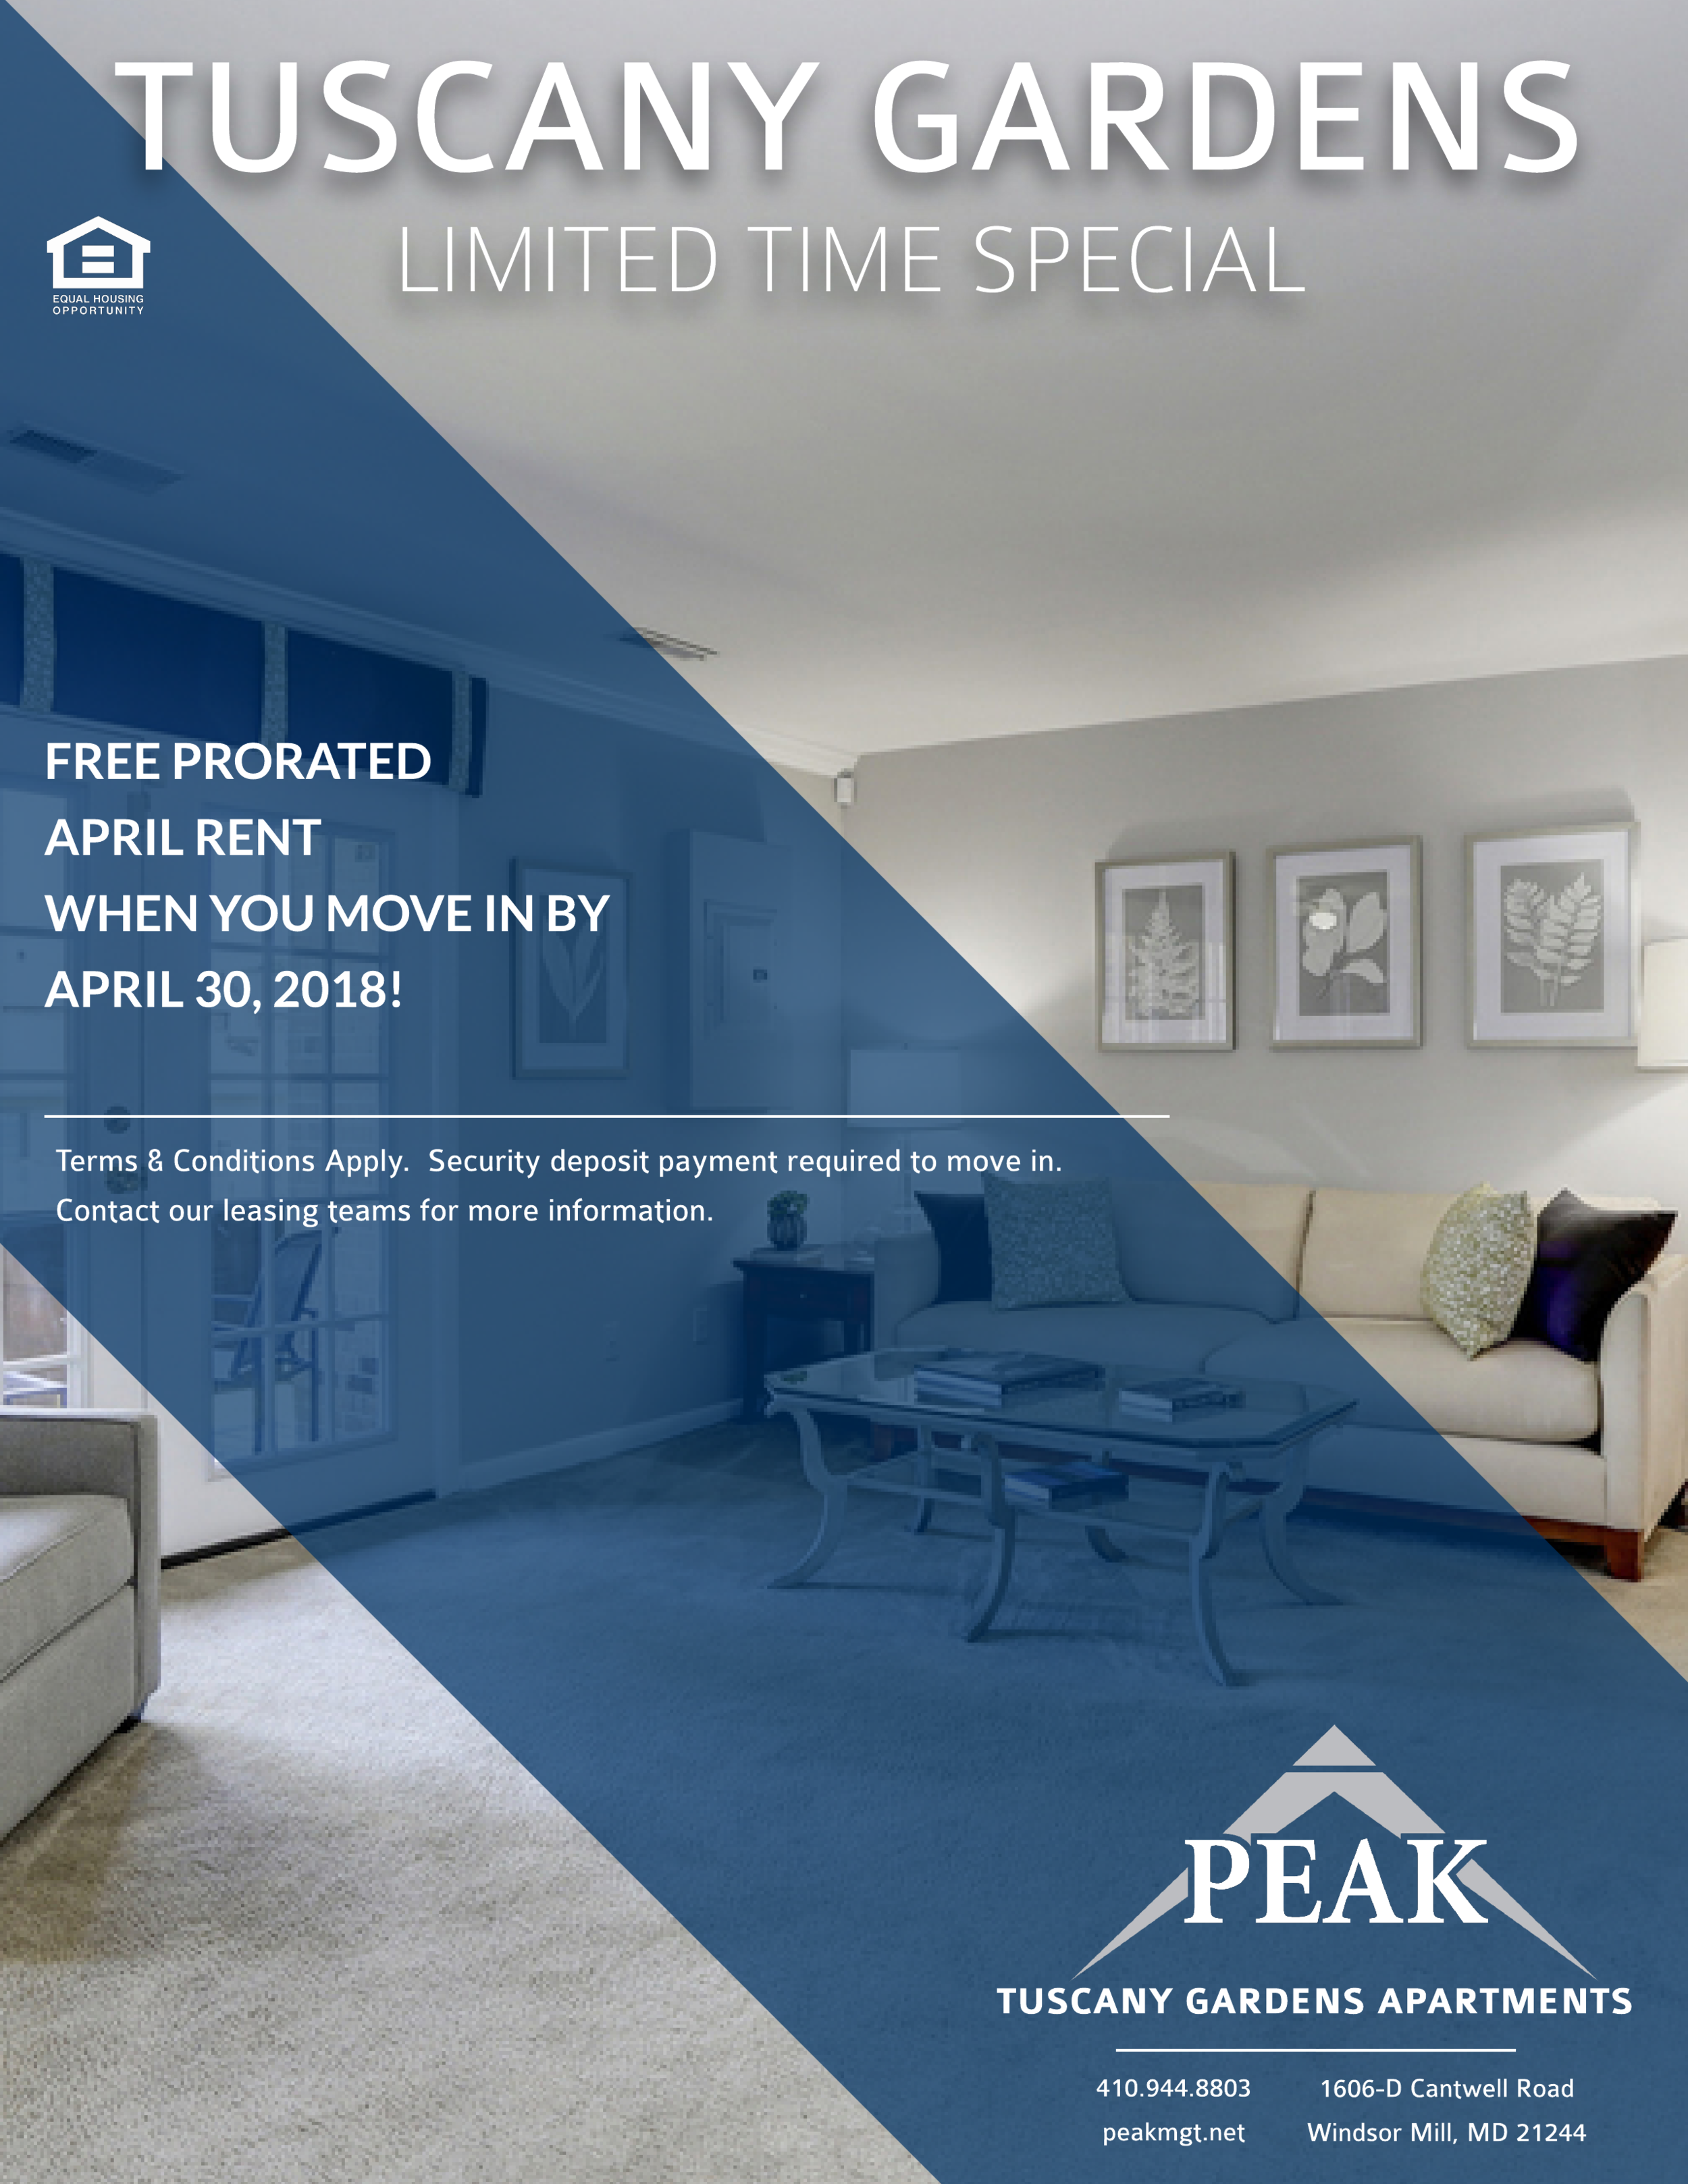 Tuscany Gardens Apartments in Windsor Mill, MD April Rent Promotion